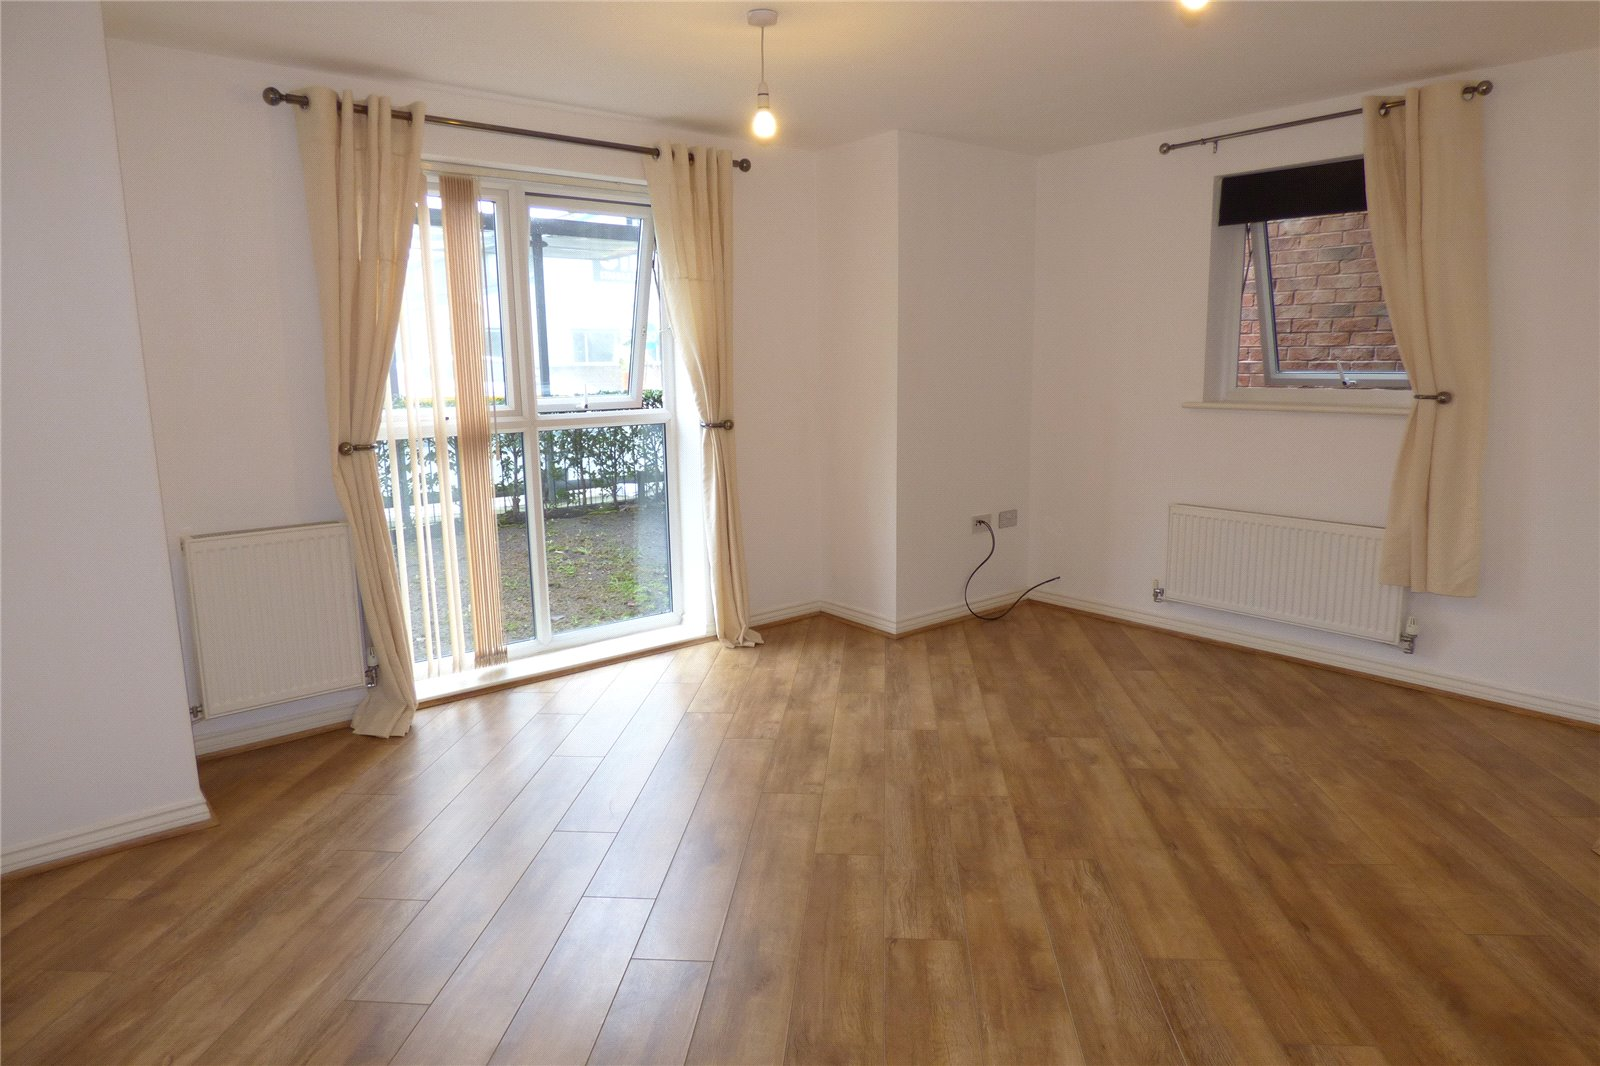 2 Bed Apartment Manchester 2 Bed Apartment For Sale Manchester Street Heywood Greater